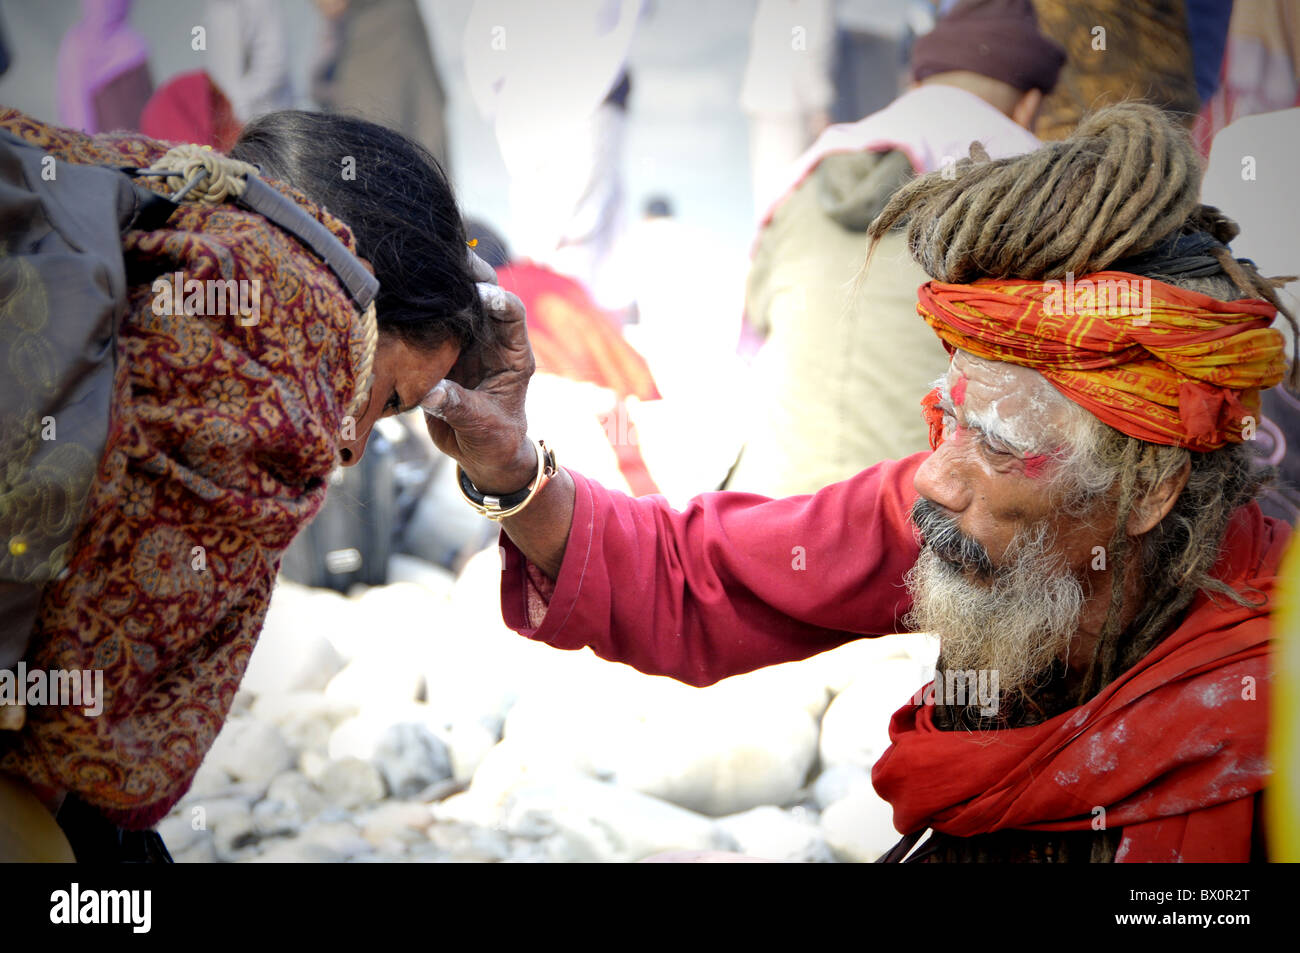 sadhu giving the blessing to a pilgrim - Stock Image